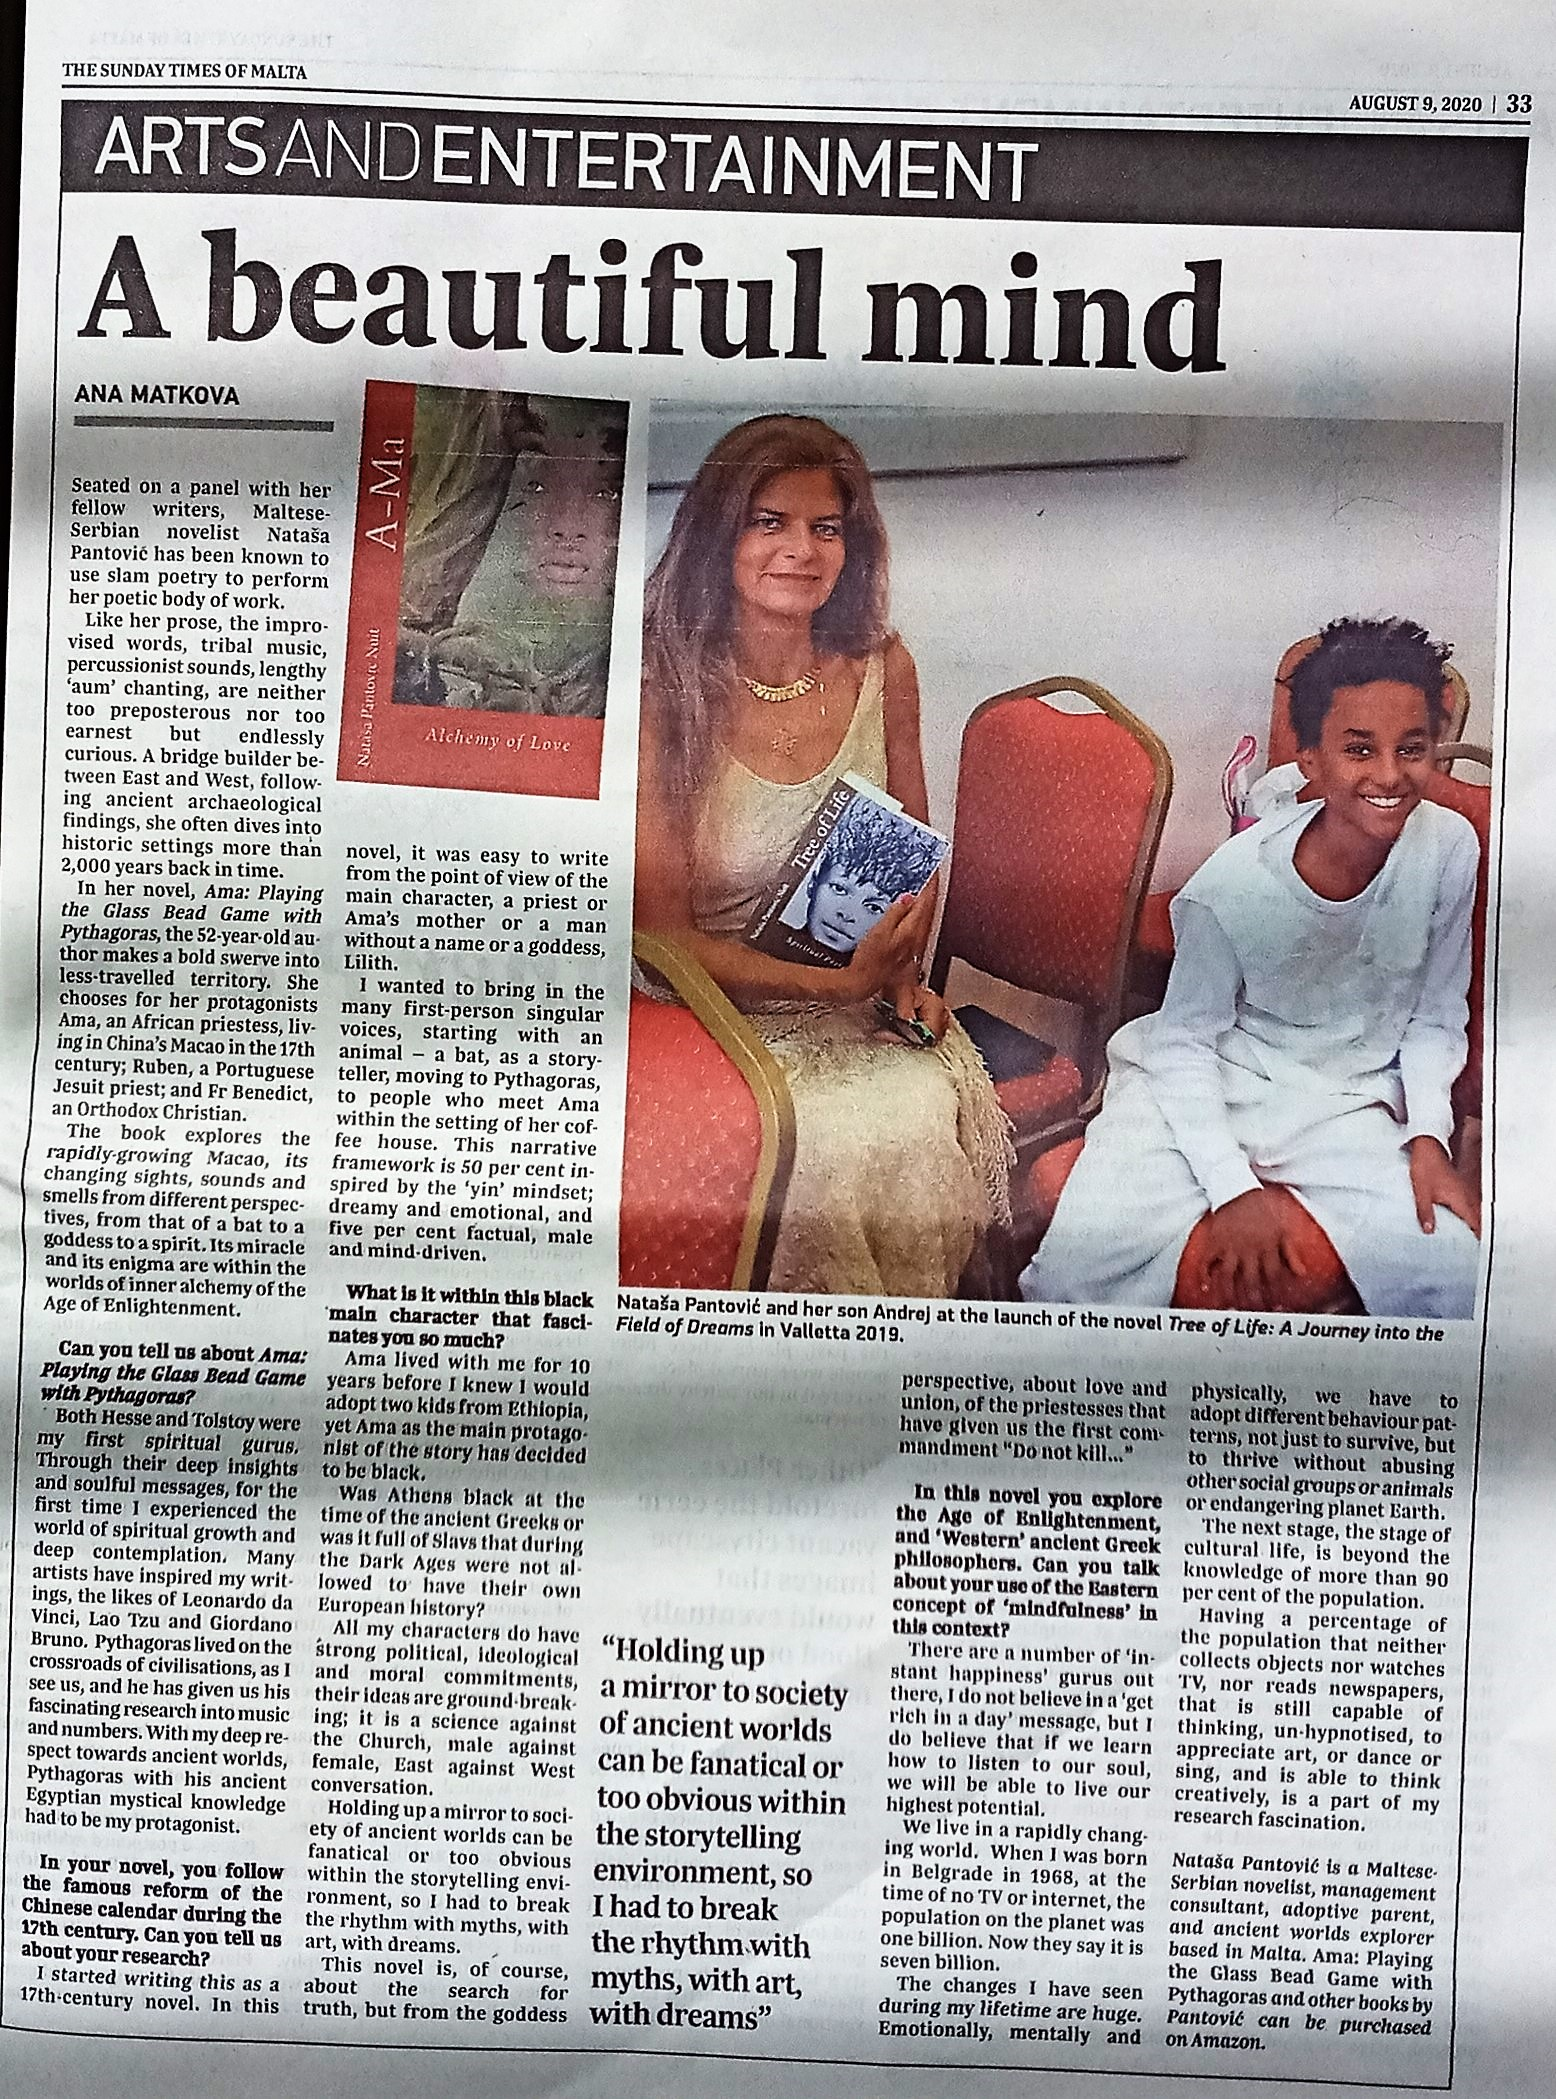 Sunday Times Article full image 9 Aug 2020 a Beautiful Mind interview with Nataša Pantović